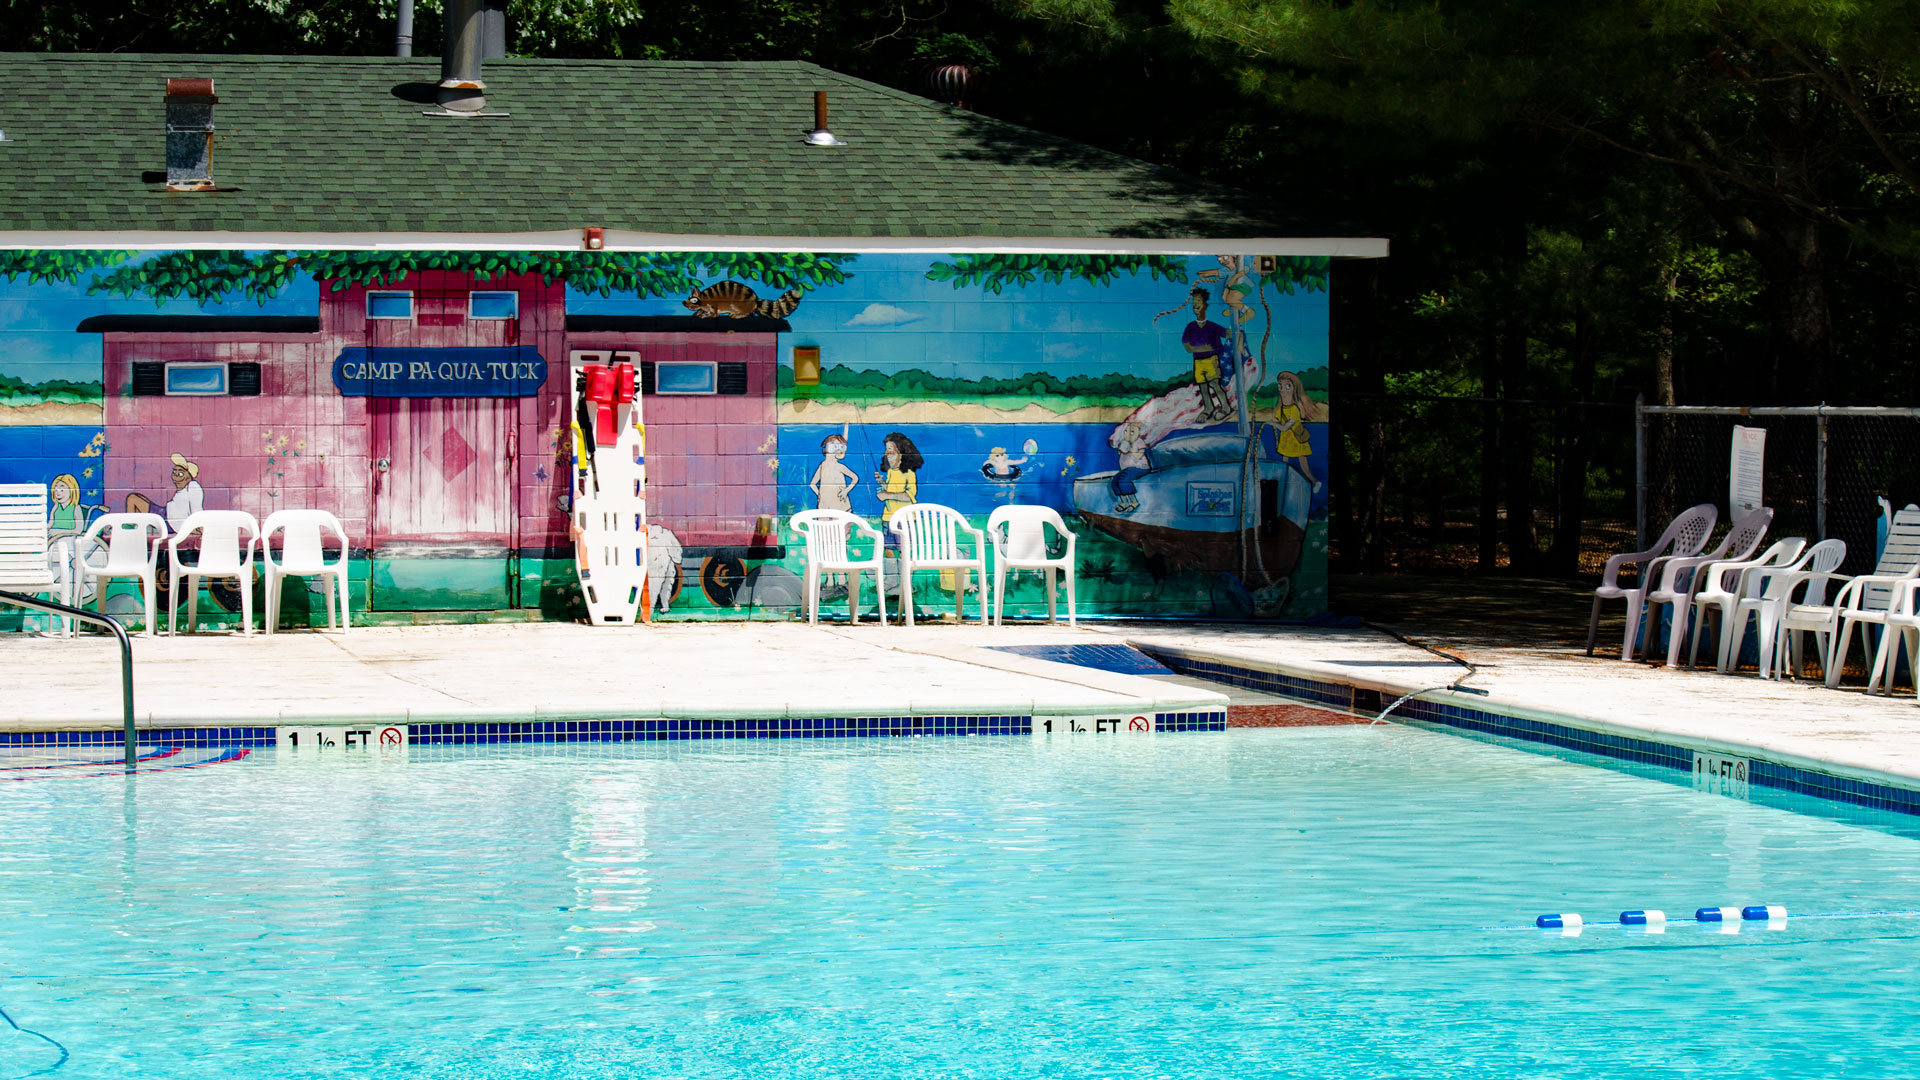 Camp Pa-Qua-Tuck pool